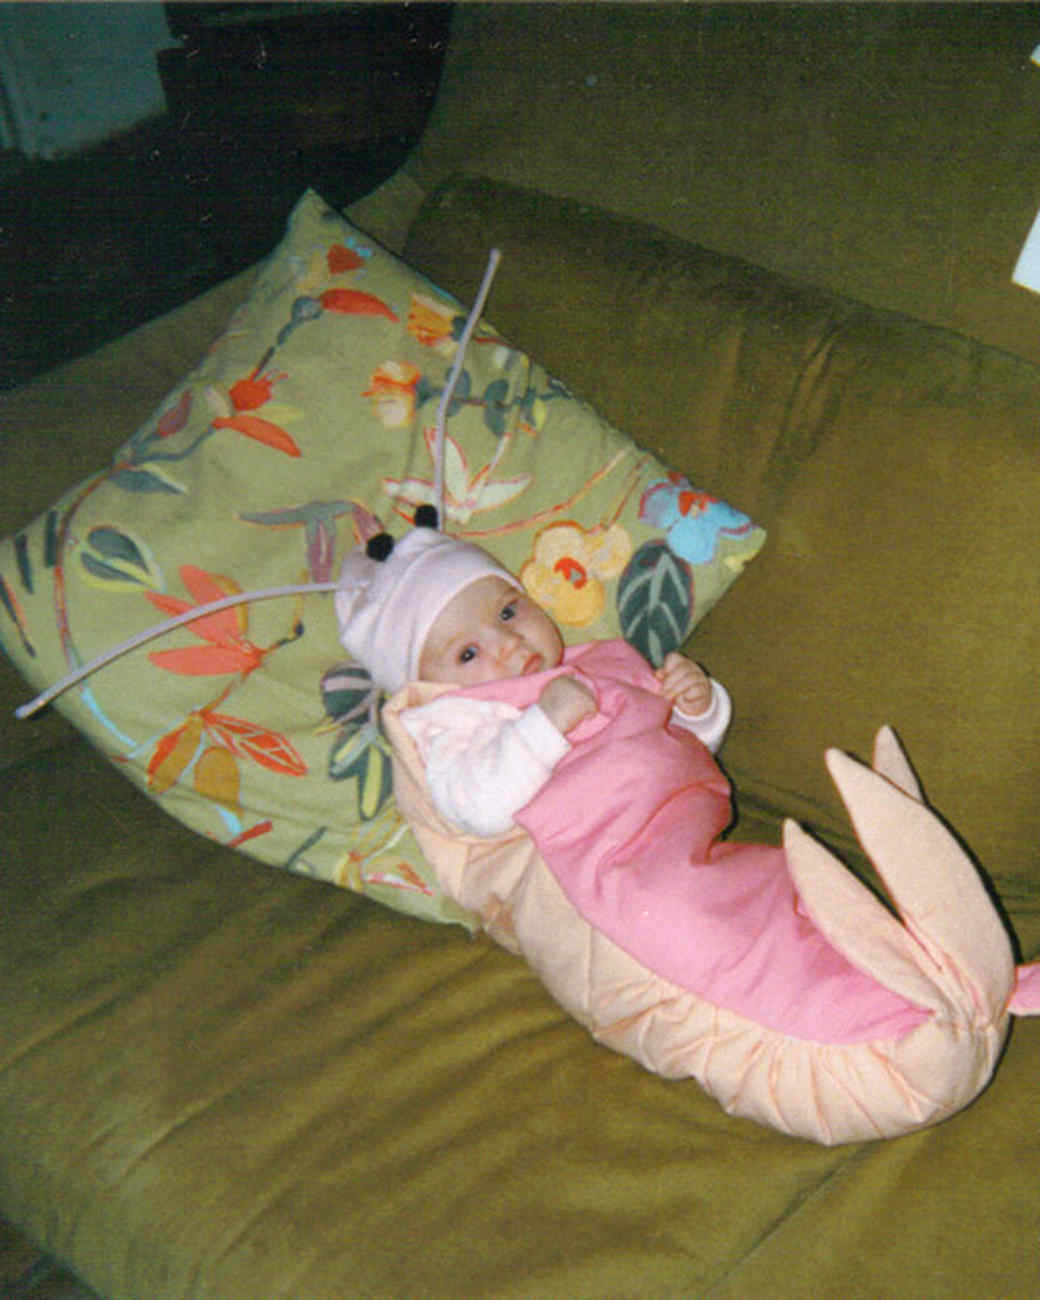 best_of_halloween09_shrimp.jpg